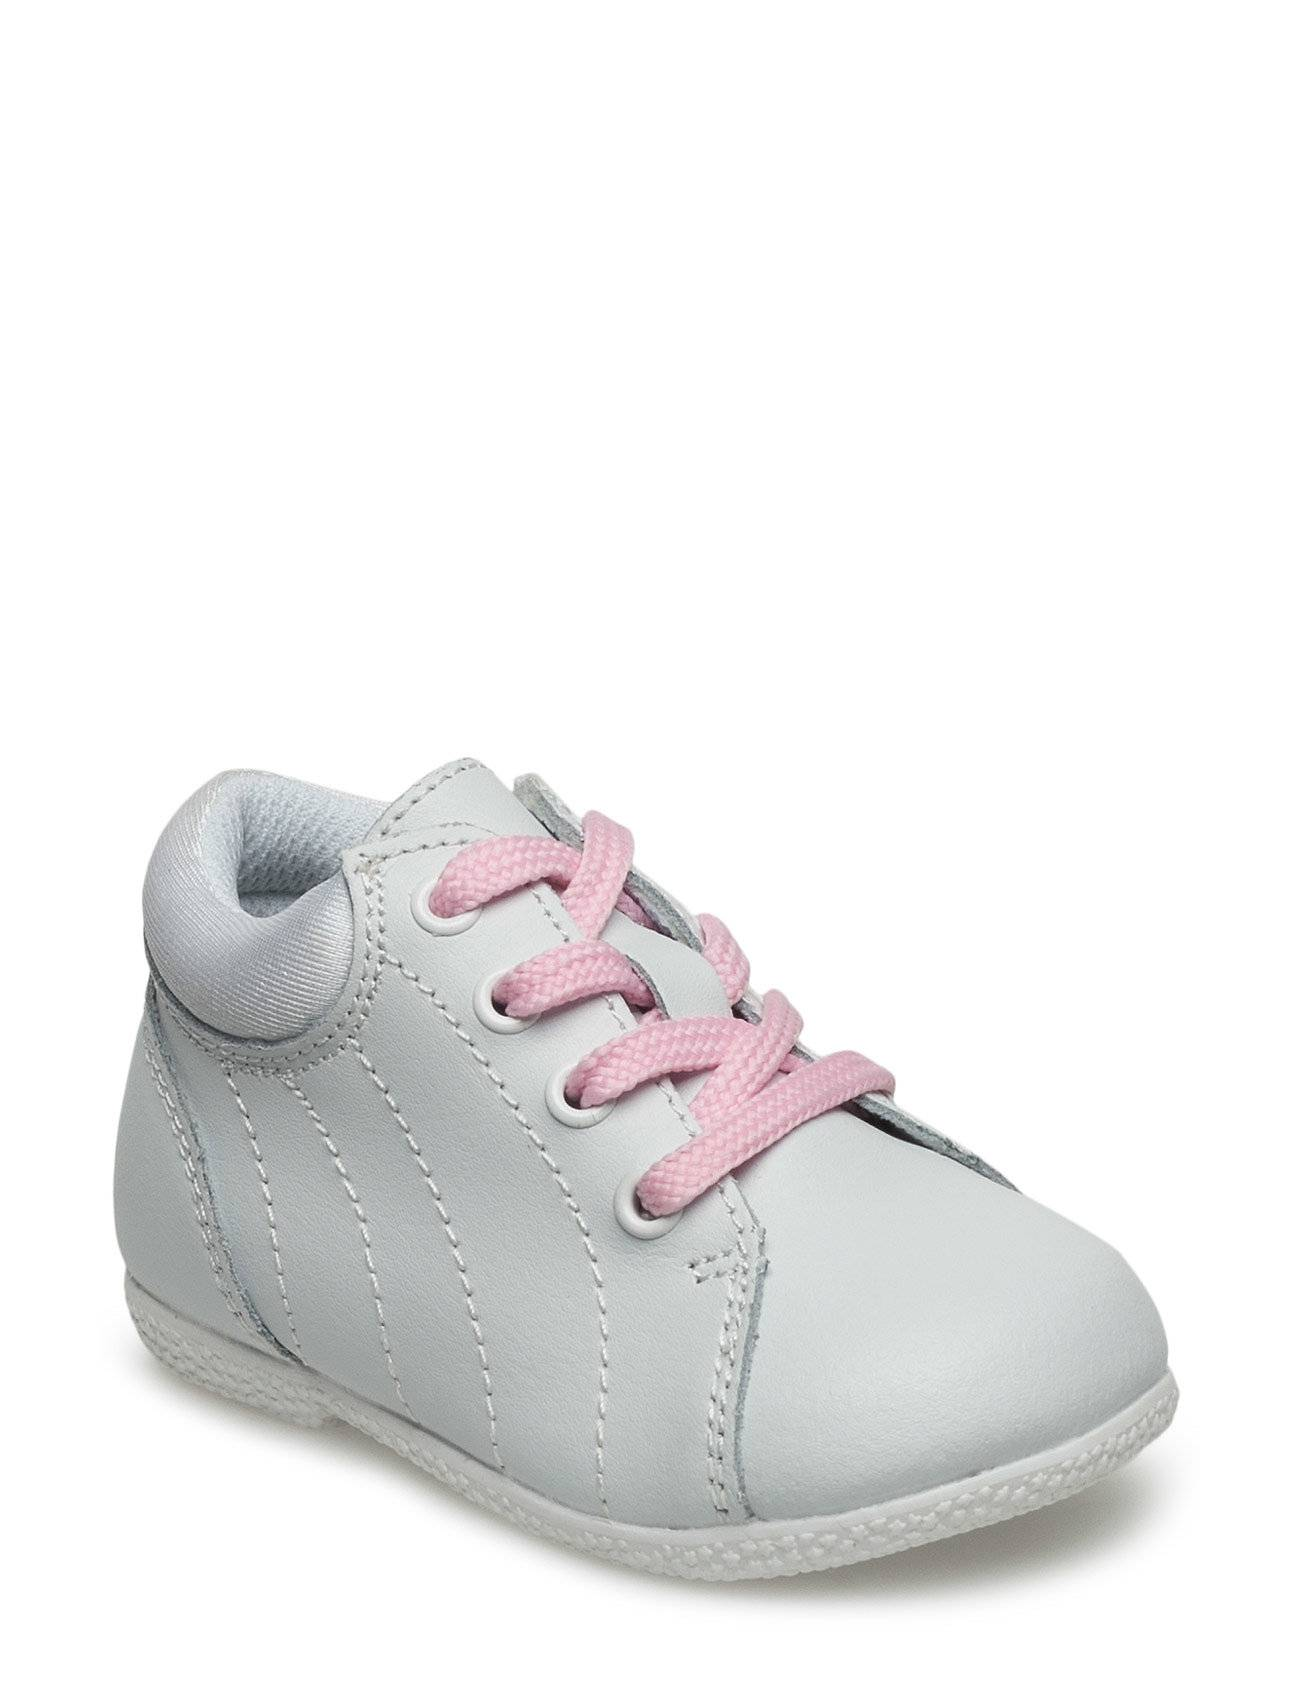 Gulliver Shoes